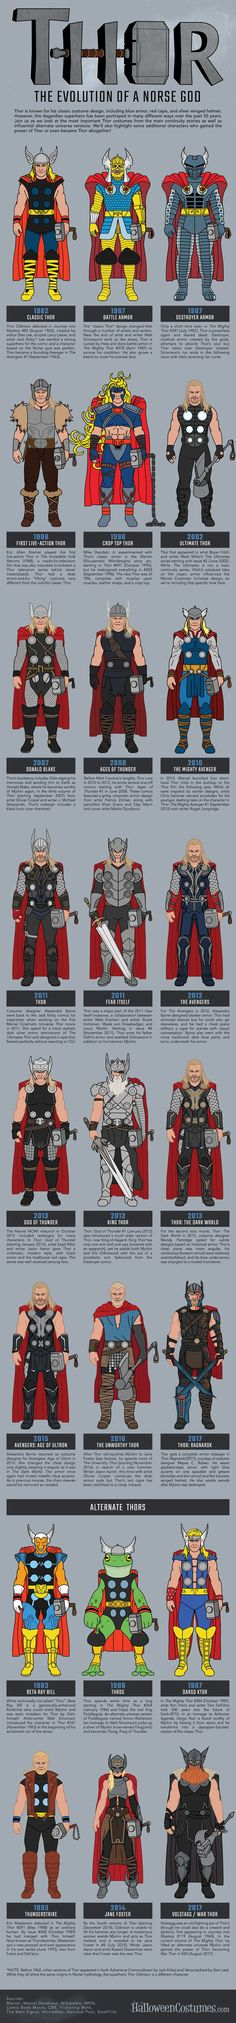 Behold, the costume evolution of Thor from his first comics appearance up to his latest appearance in Thor: Ragnarok!